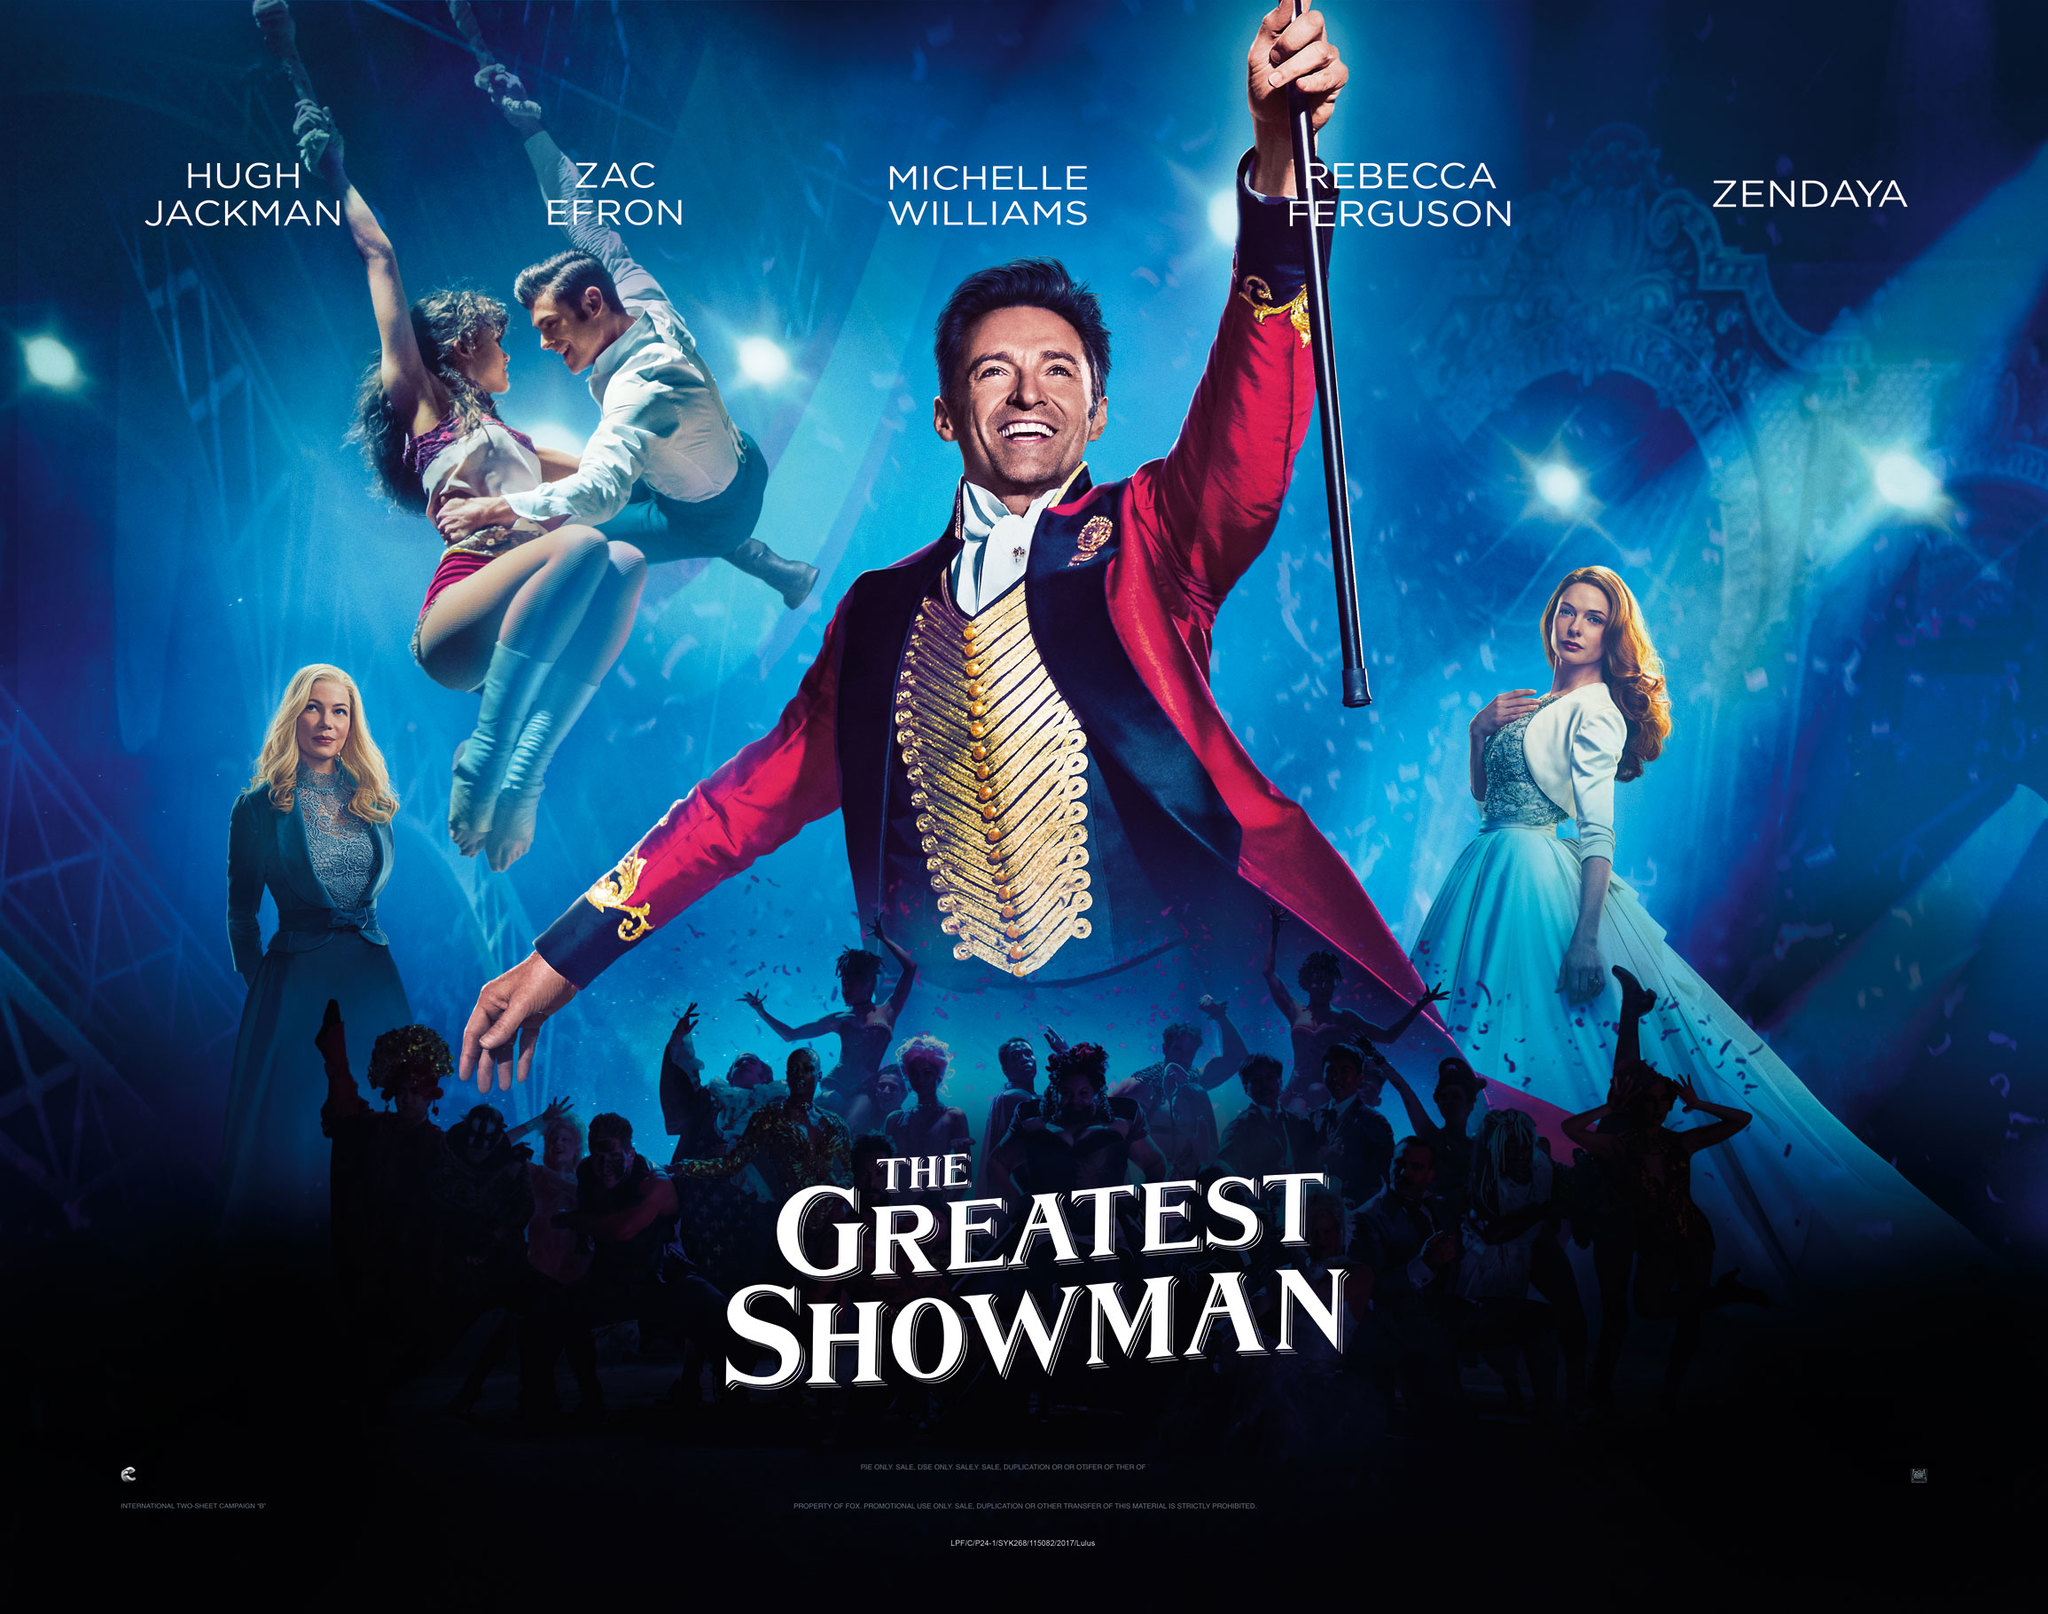 The Greatest Showman - Movie info and showtimes in